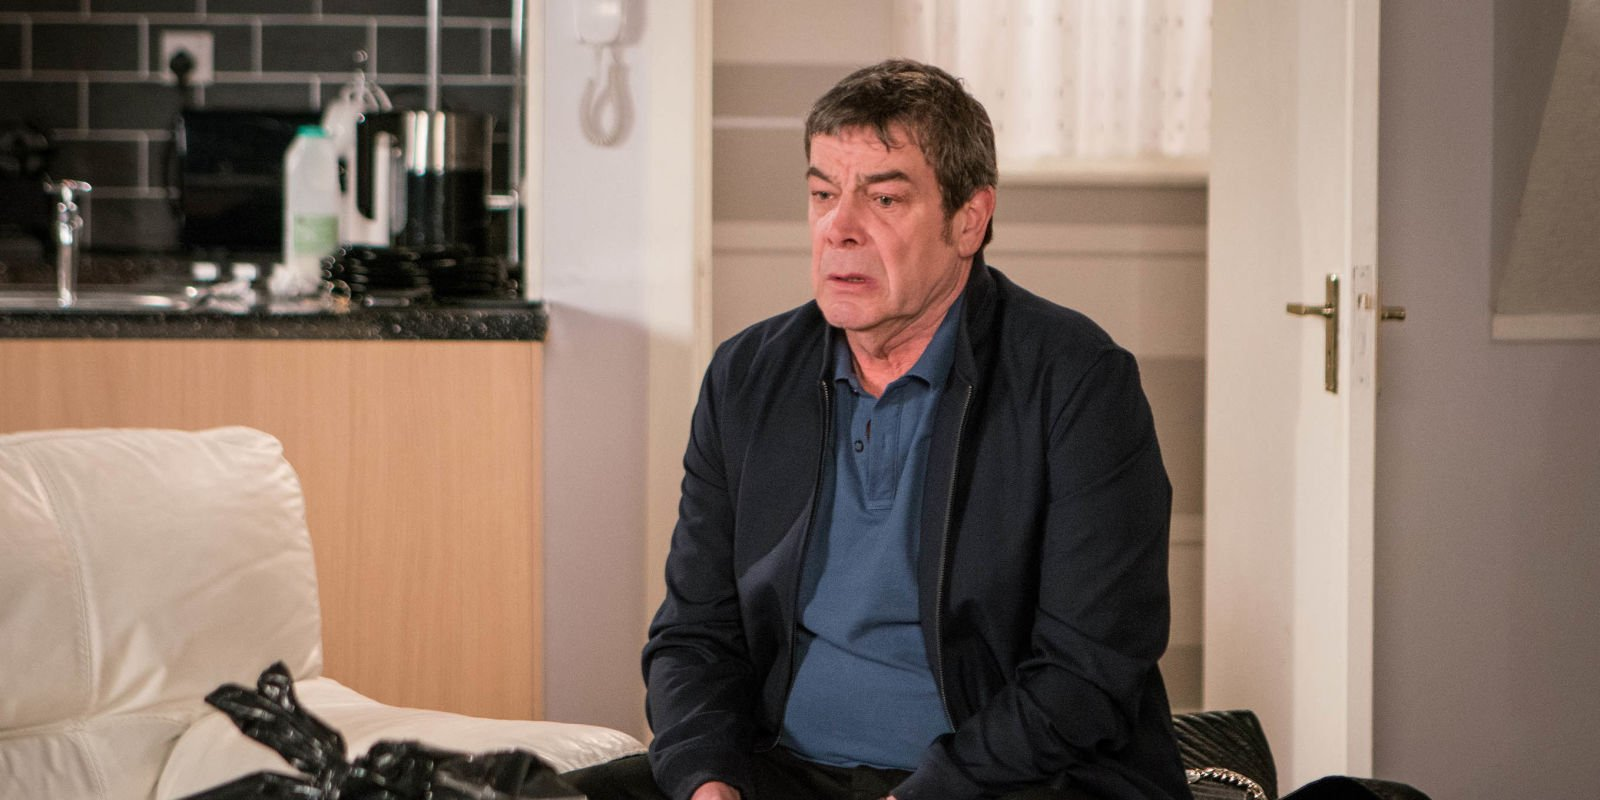 Coronation Street star Richard Hawley reveals a personal connection to Aidan's suicide storyline